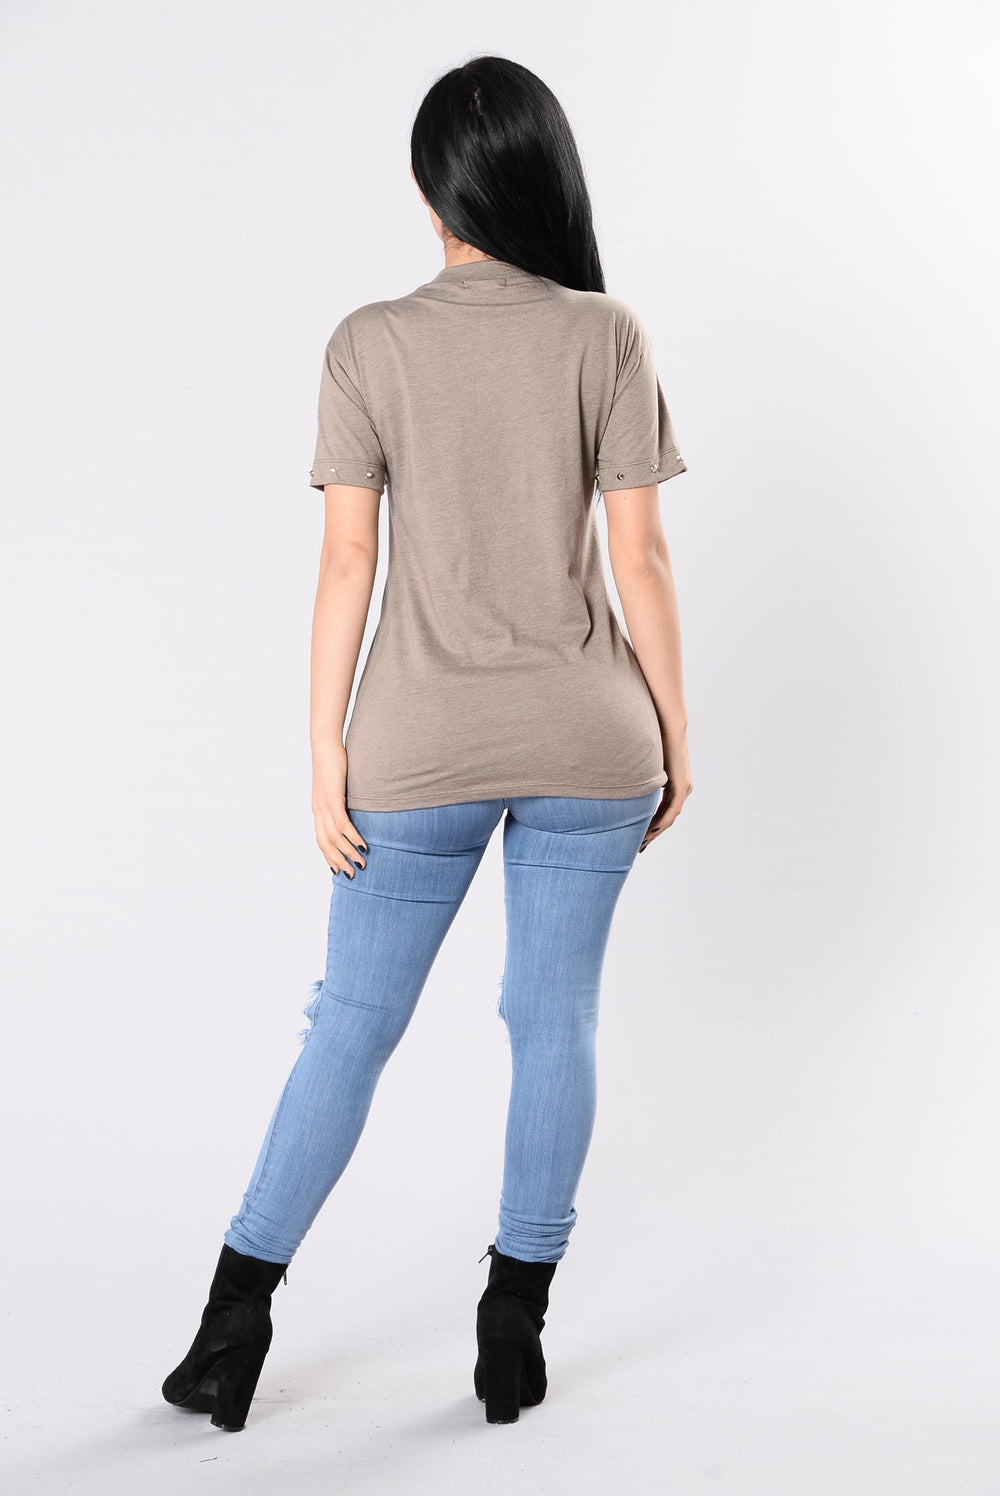 Pacific Coast Tee - Taupe